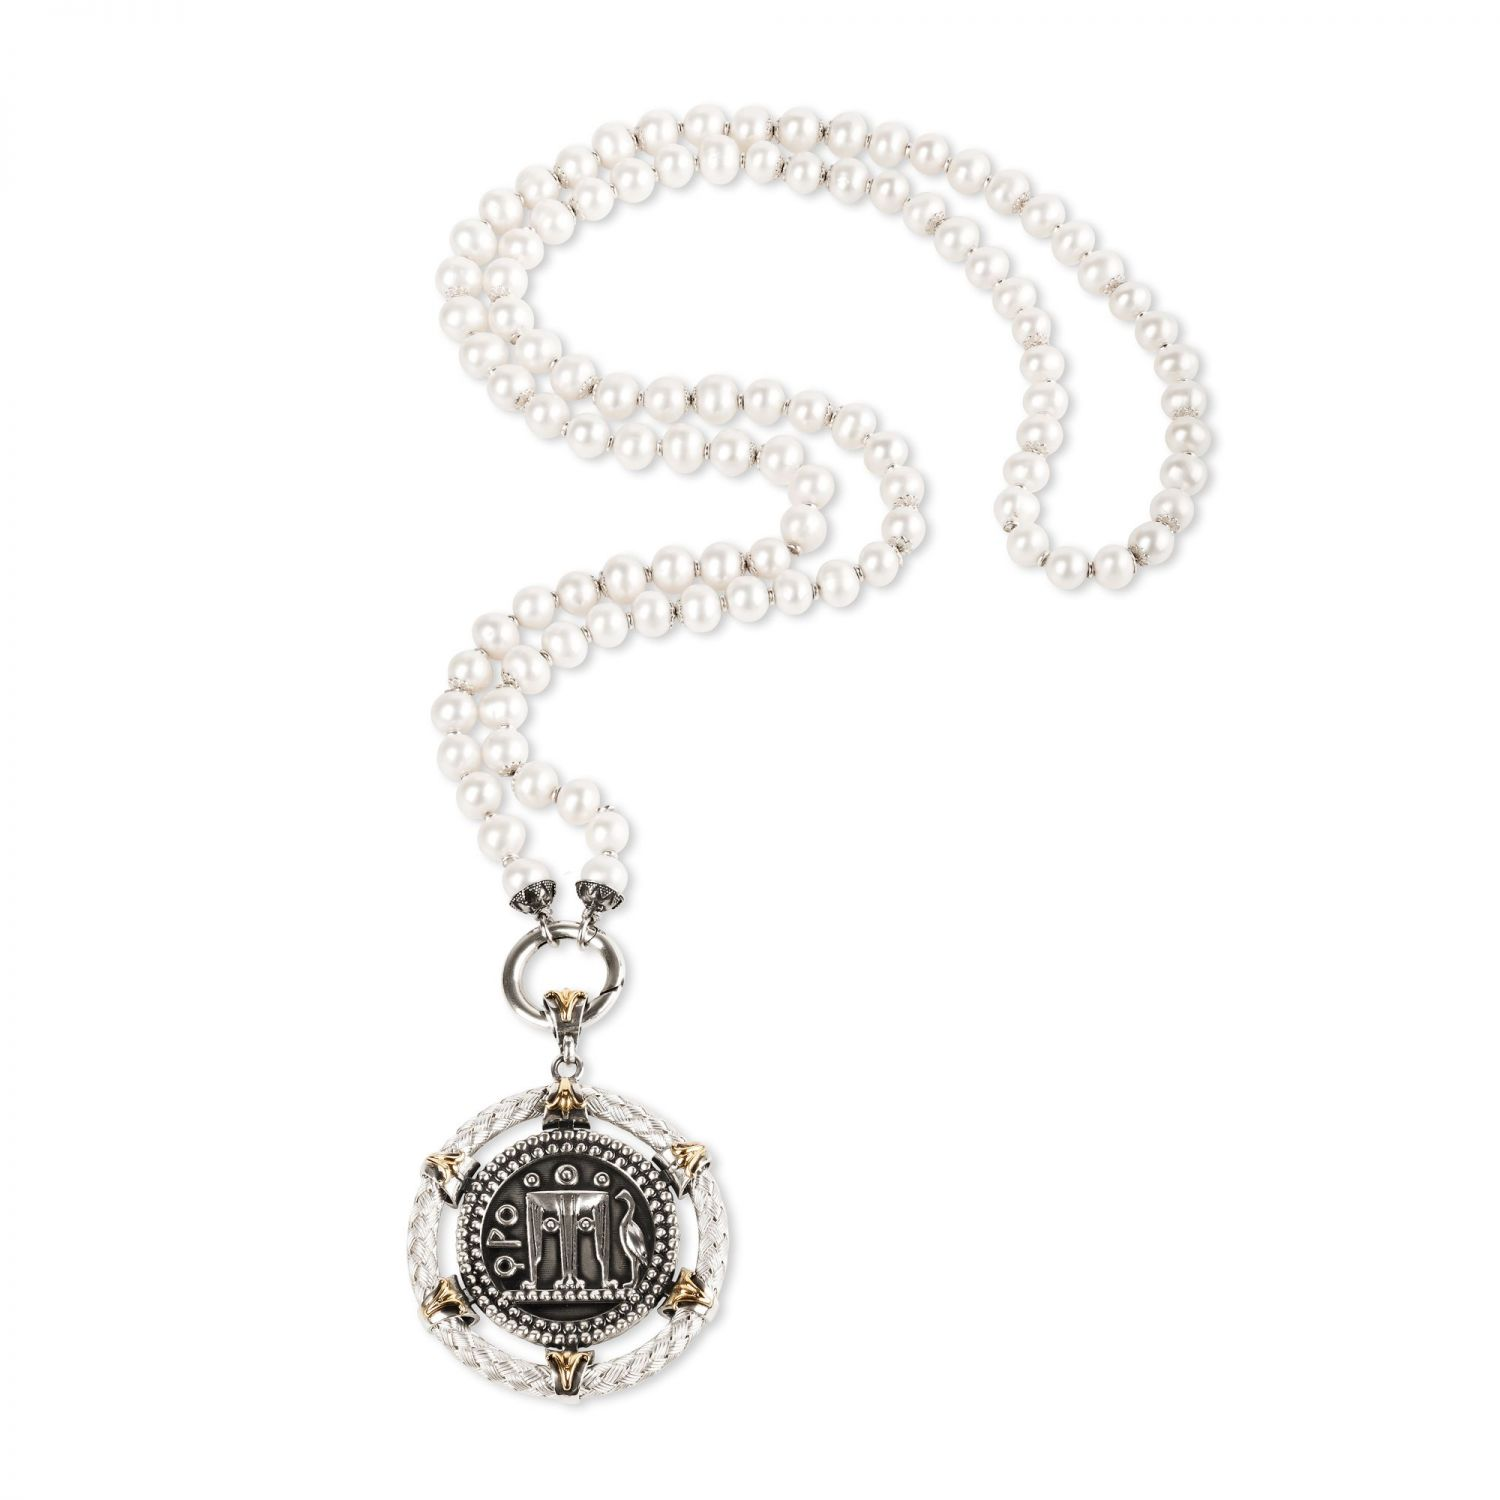 Collana Chanel di Perle con ciondolo Moneta (27859)